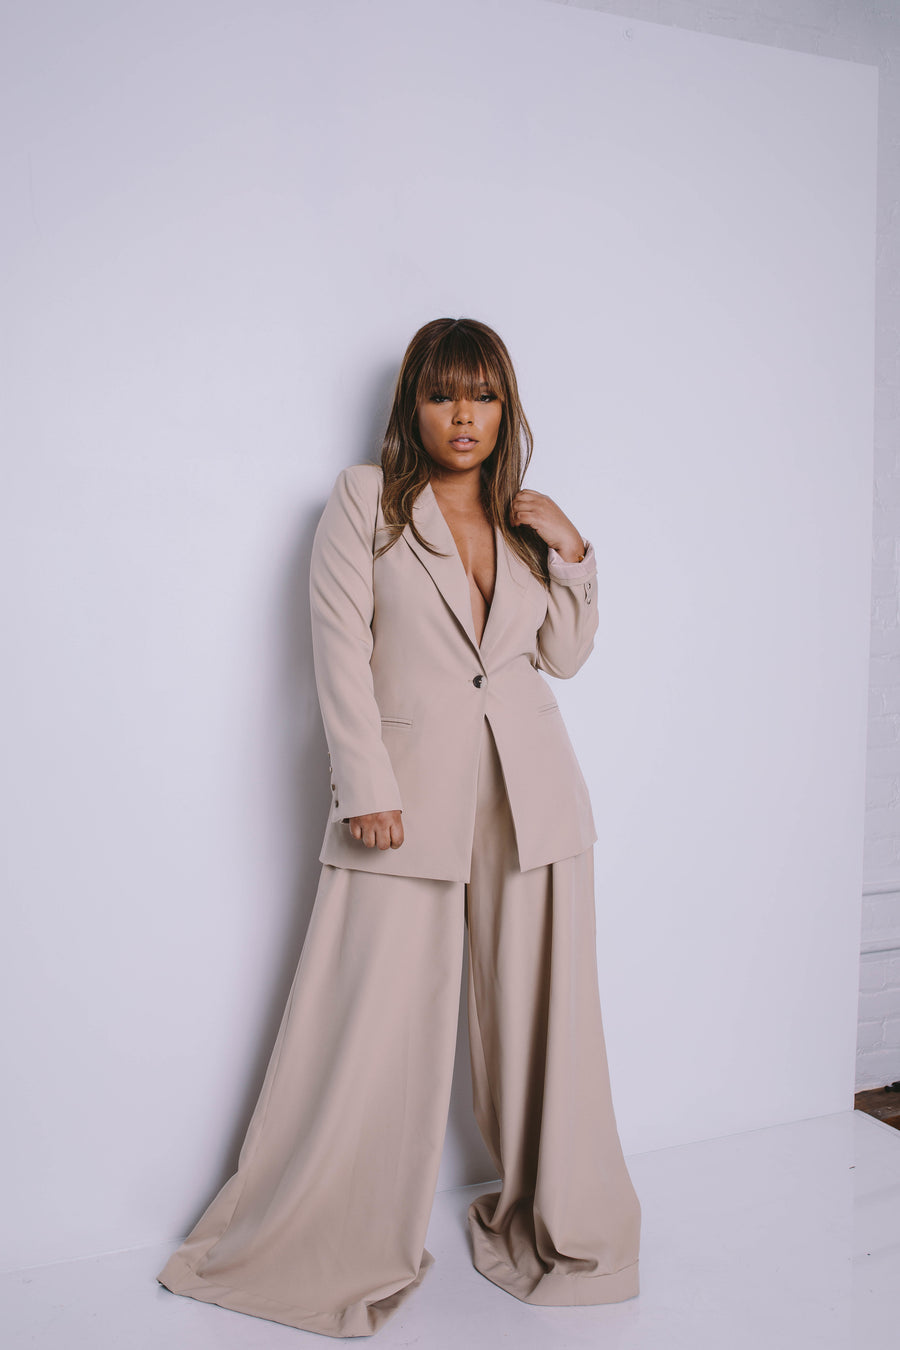 THE POWER SUIT | WIDE LEG PANT SET ESTIMATED SHIP 4/20-5/10